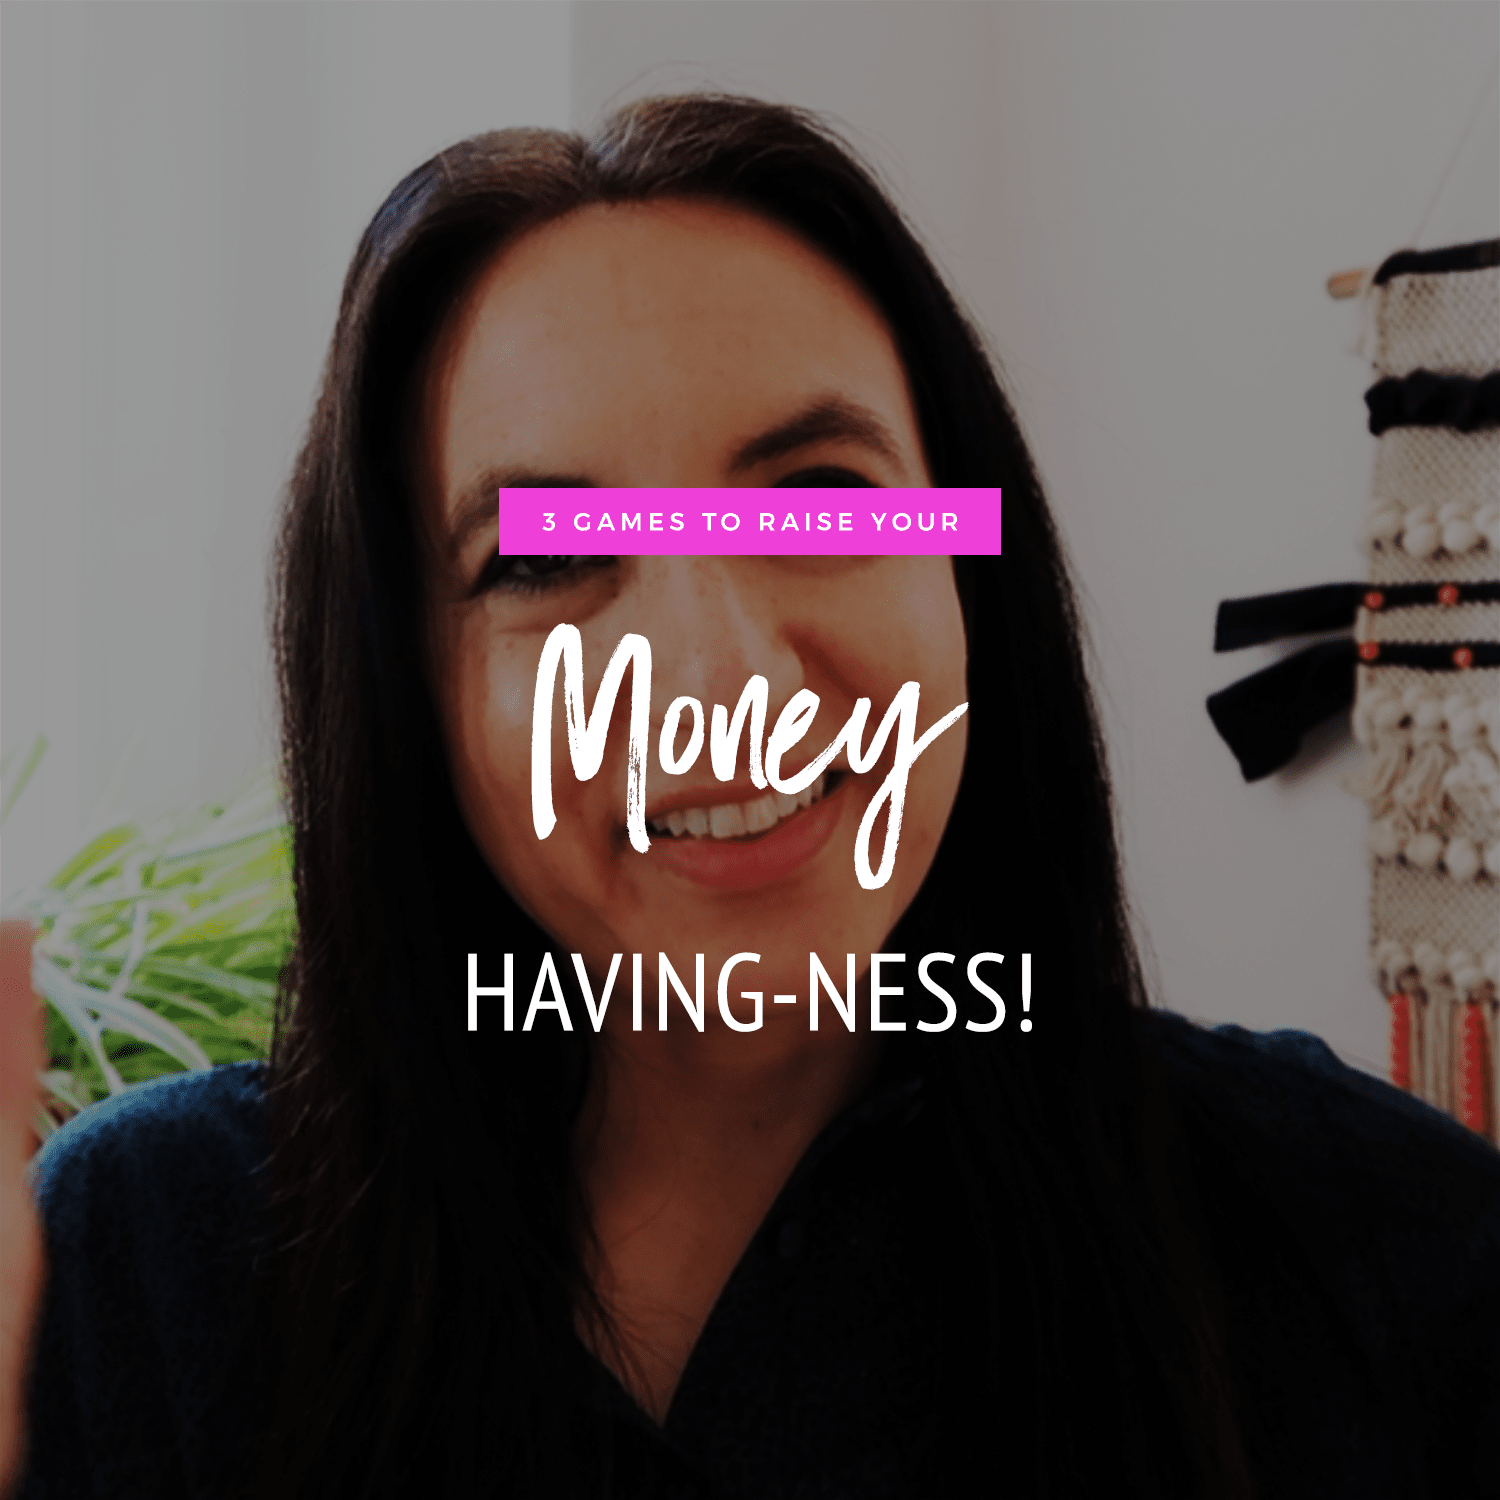 3 Games To Raise Your Money Having-ness Levels!